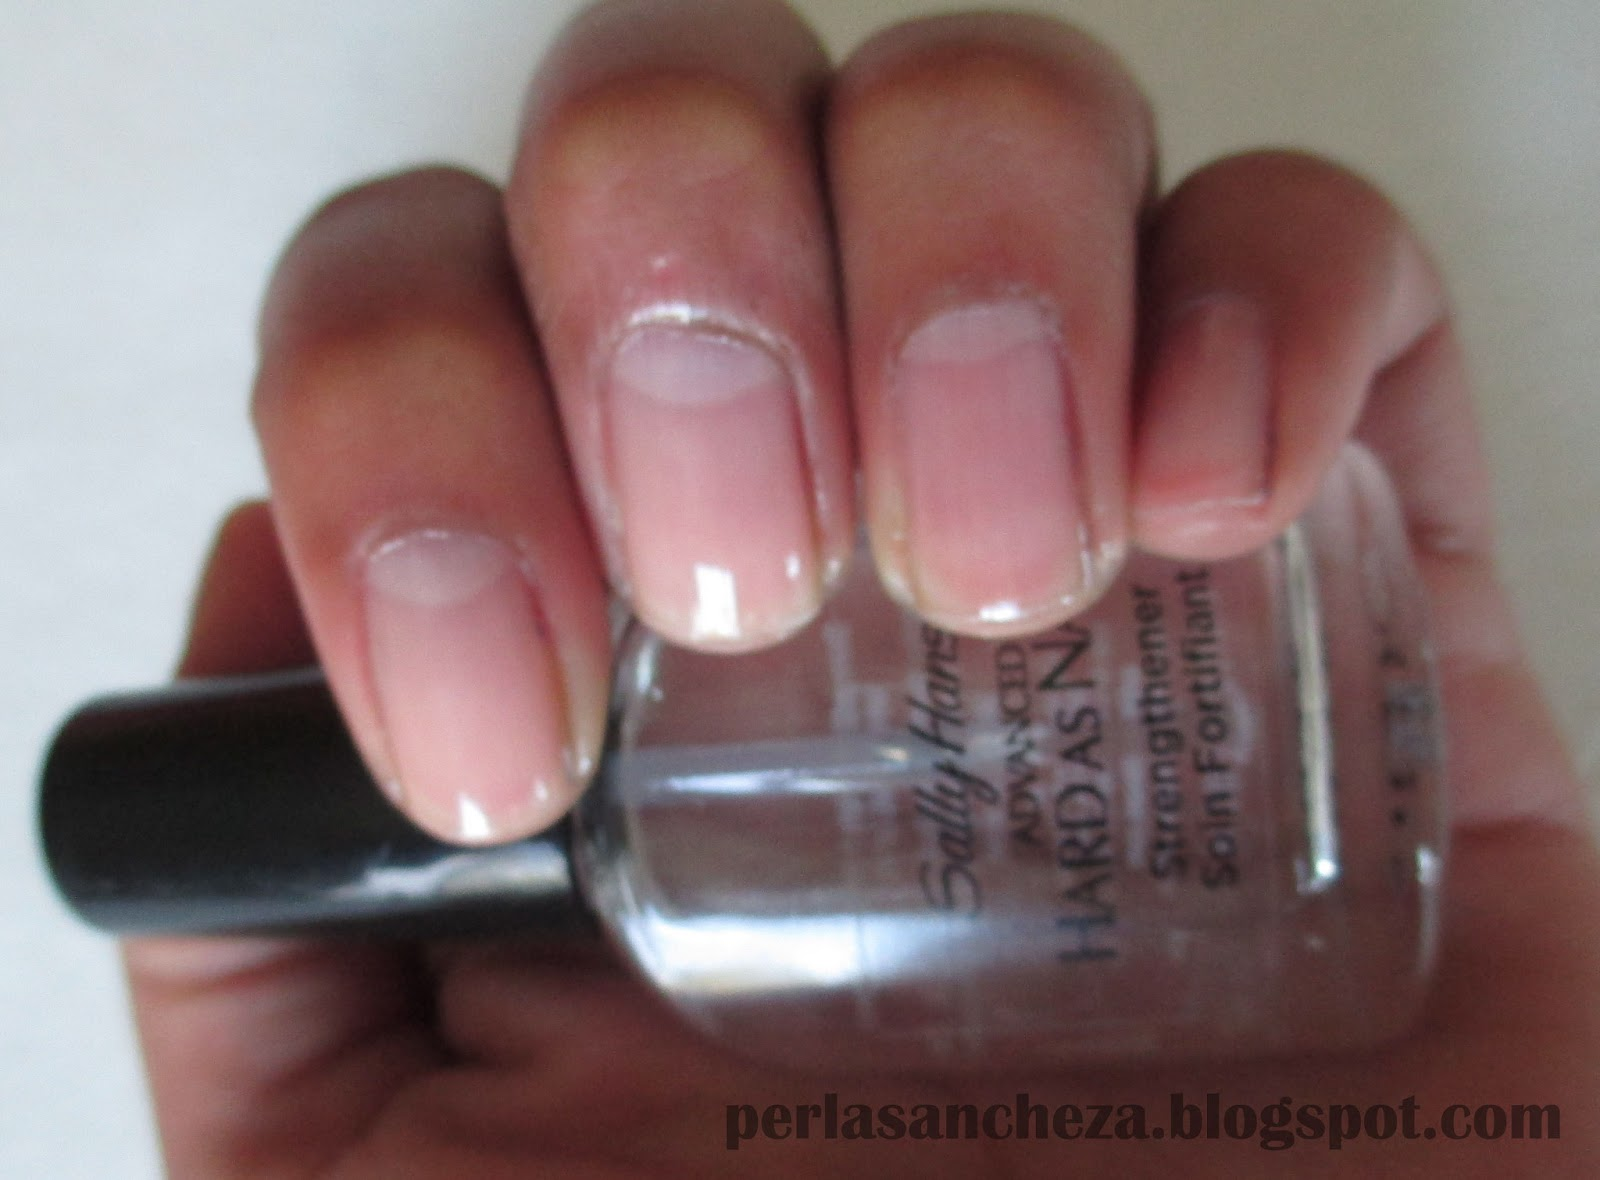 Perla Sancheza: Sally Hansen Advanced Hard as Nails Strengthener